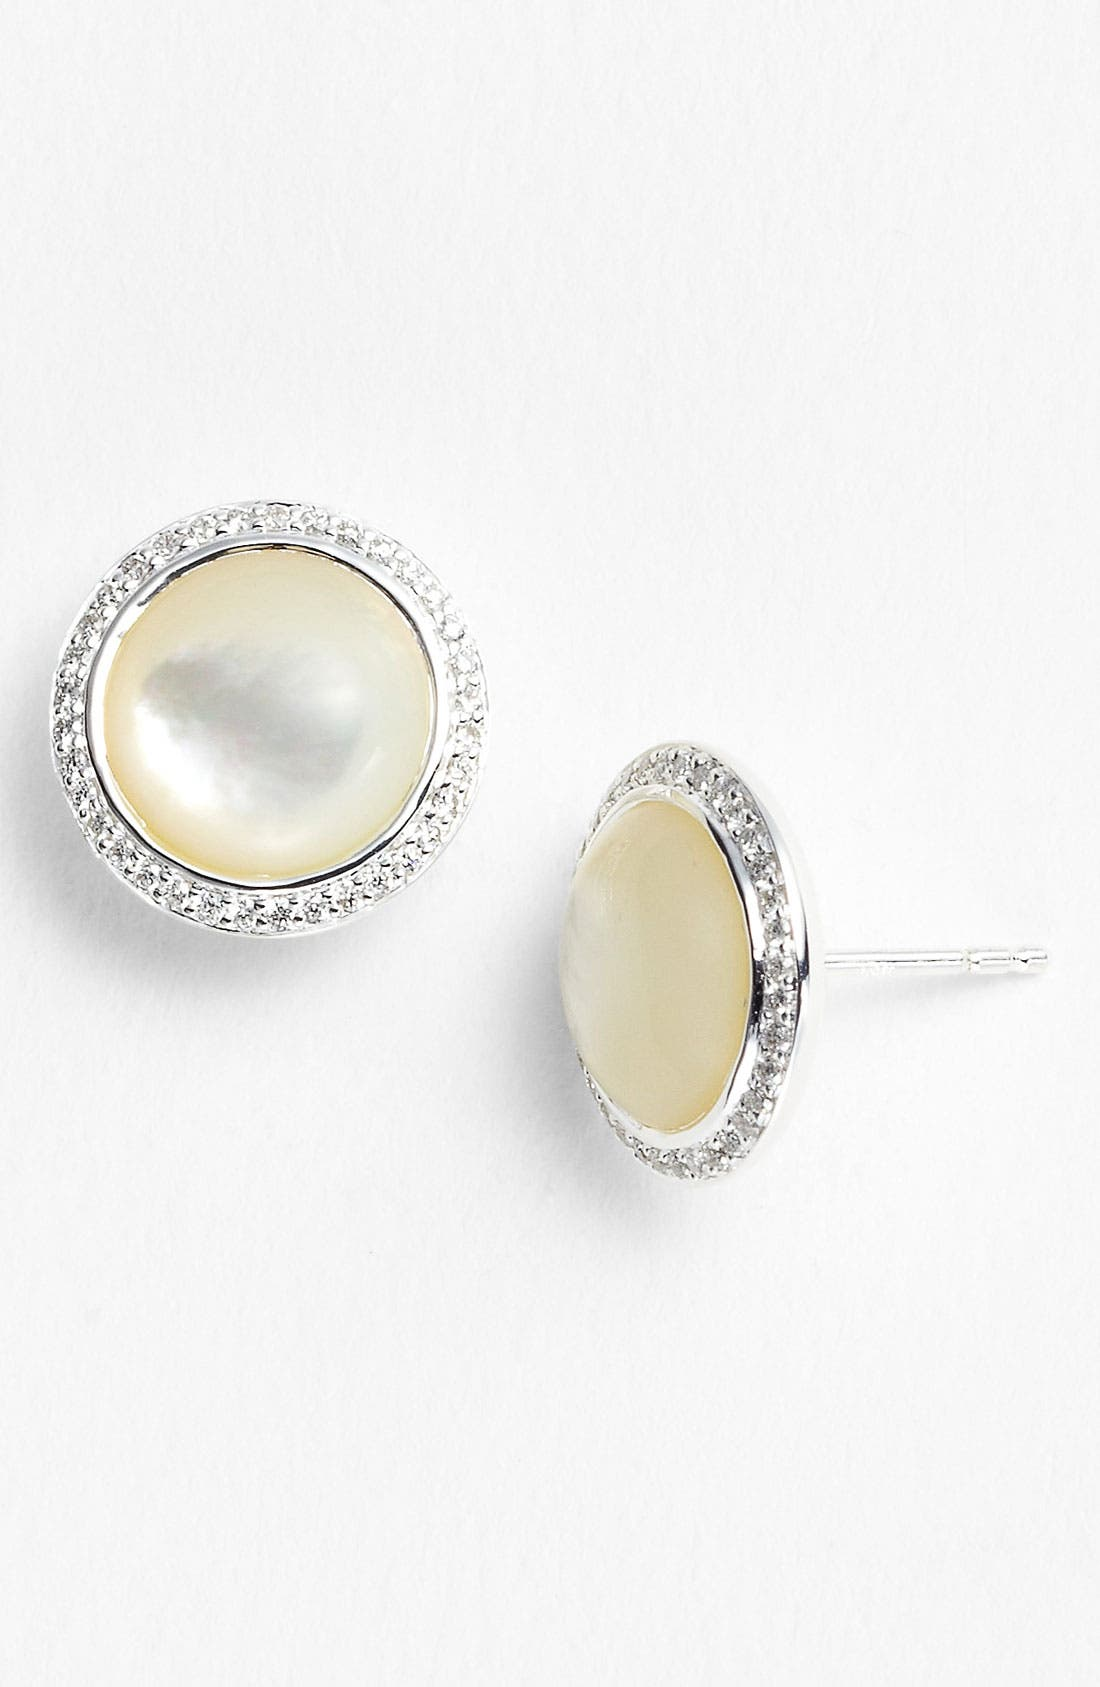 Main Image - Ippolita 'Scultura' Diamond & Cabochon Stud Earrings